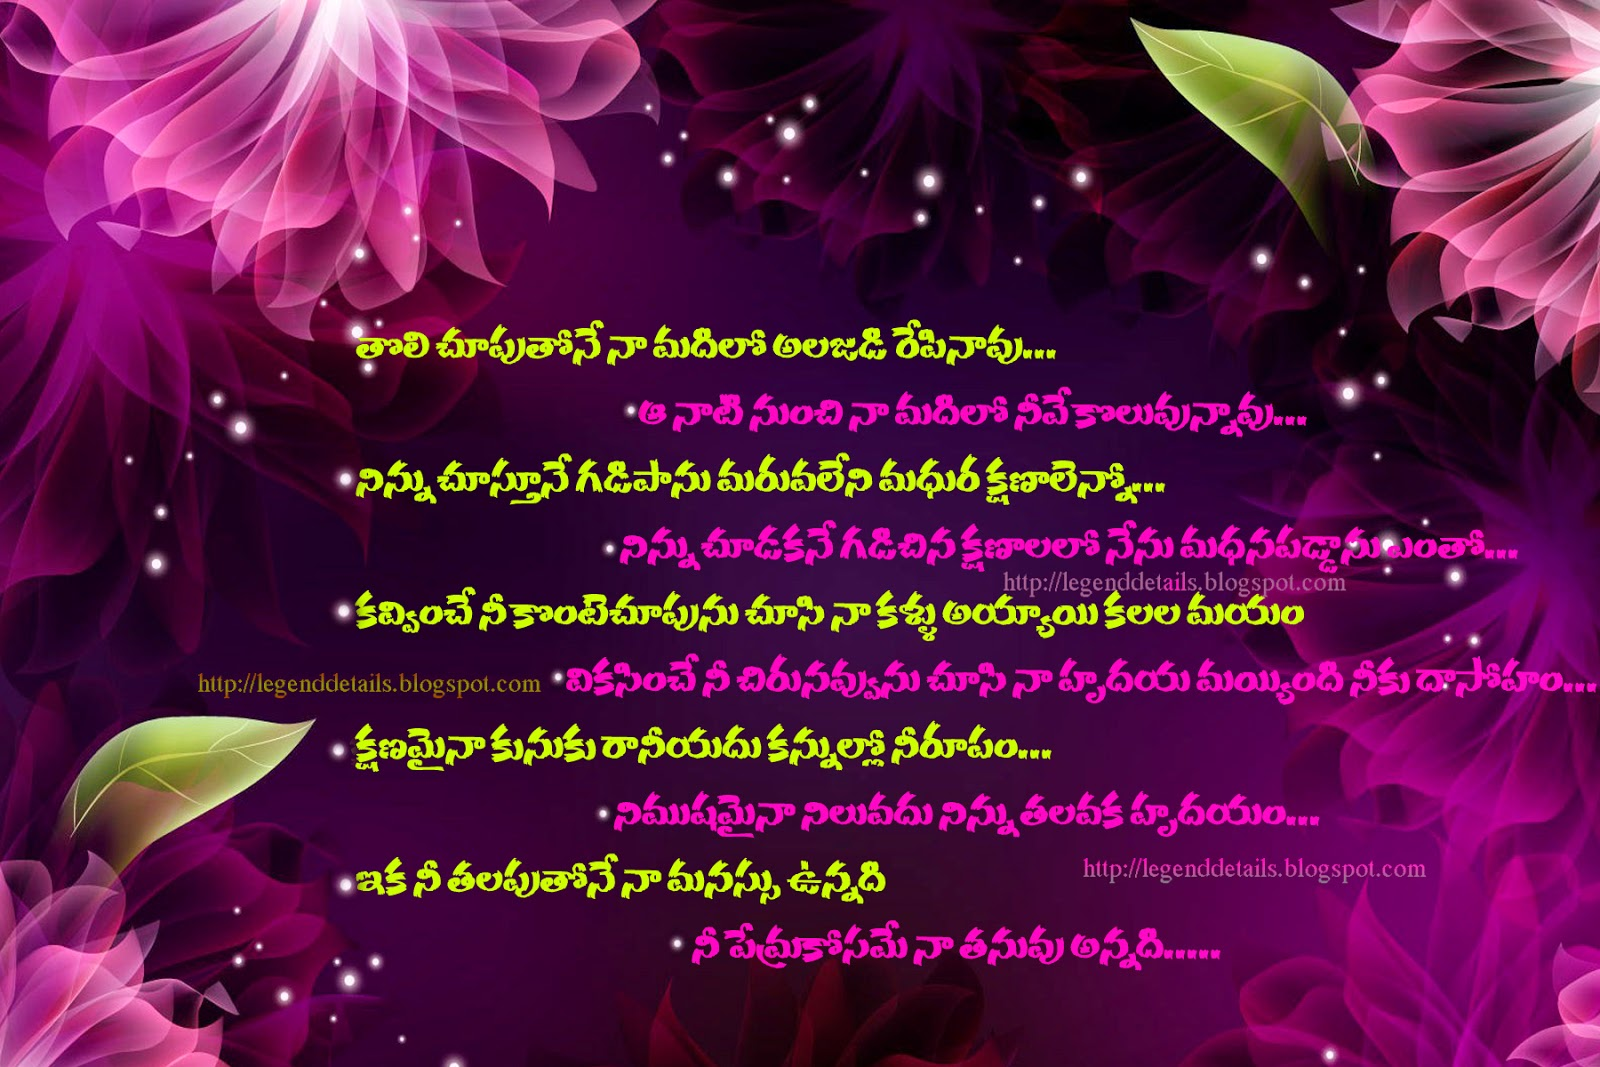 Best Love Quotes For Girlfriend In Telugu : Girl Frind Quotes In Telugu. QuotesGram